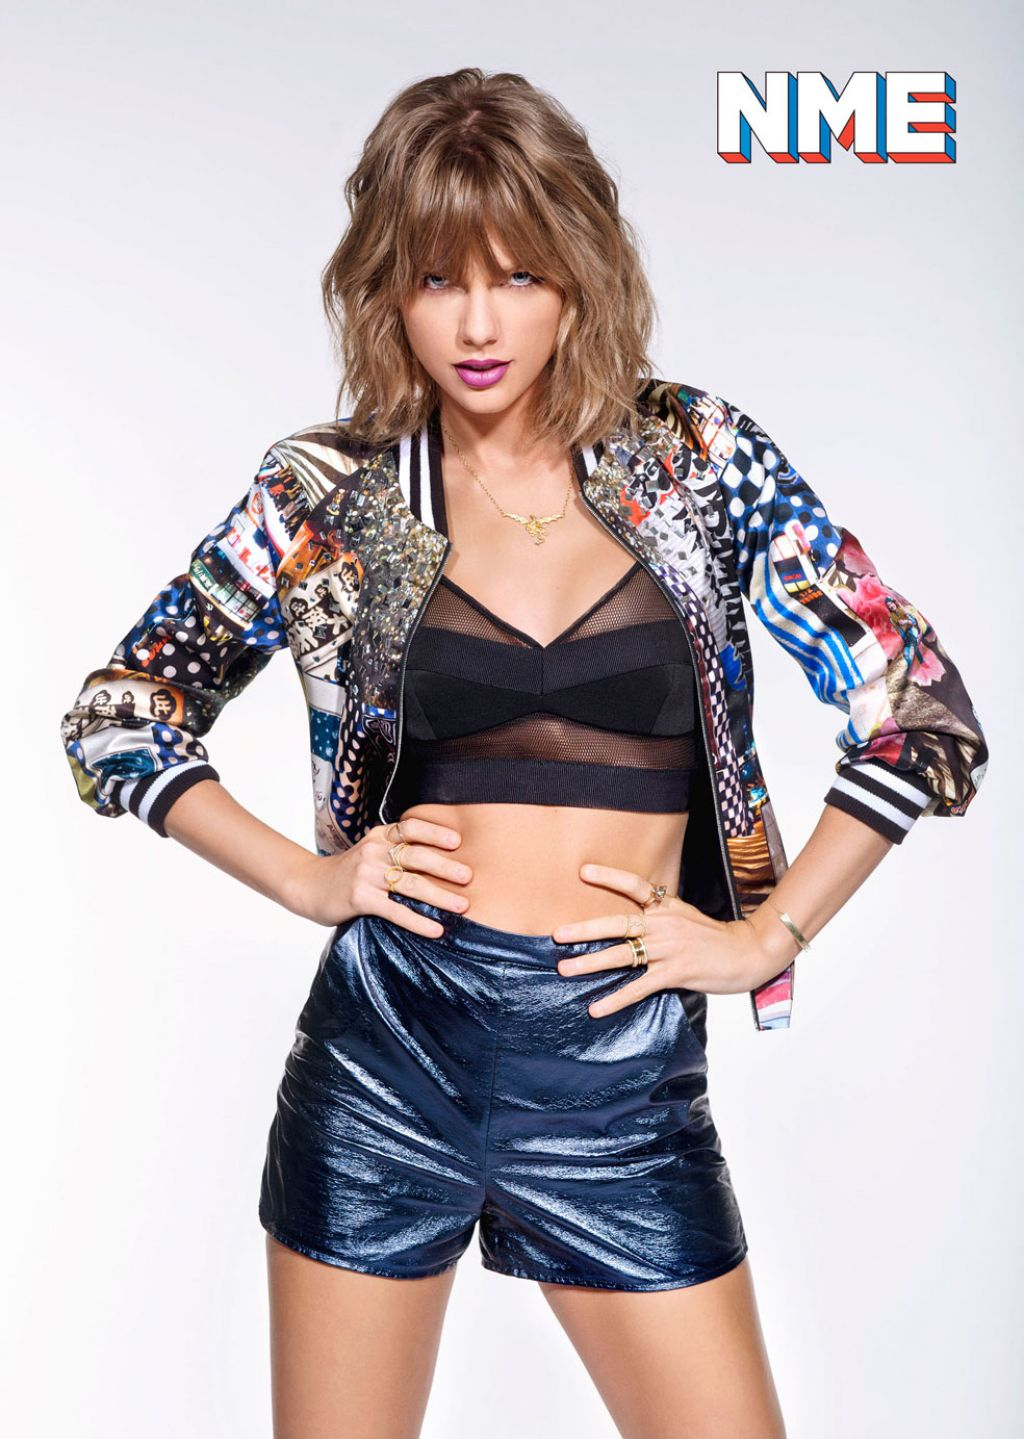 Taylor Swift - NME Magazine October 2015